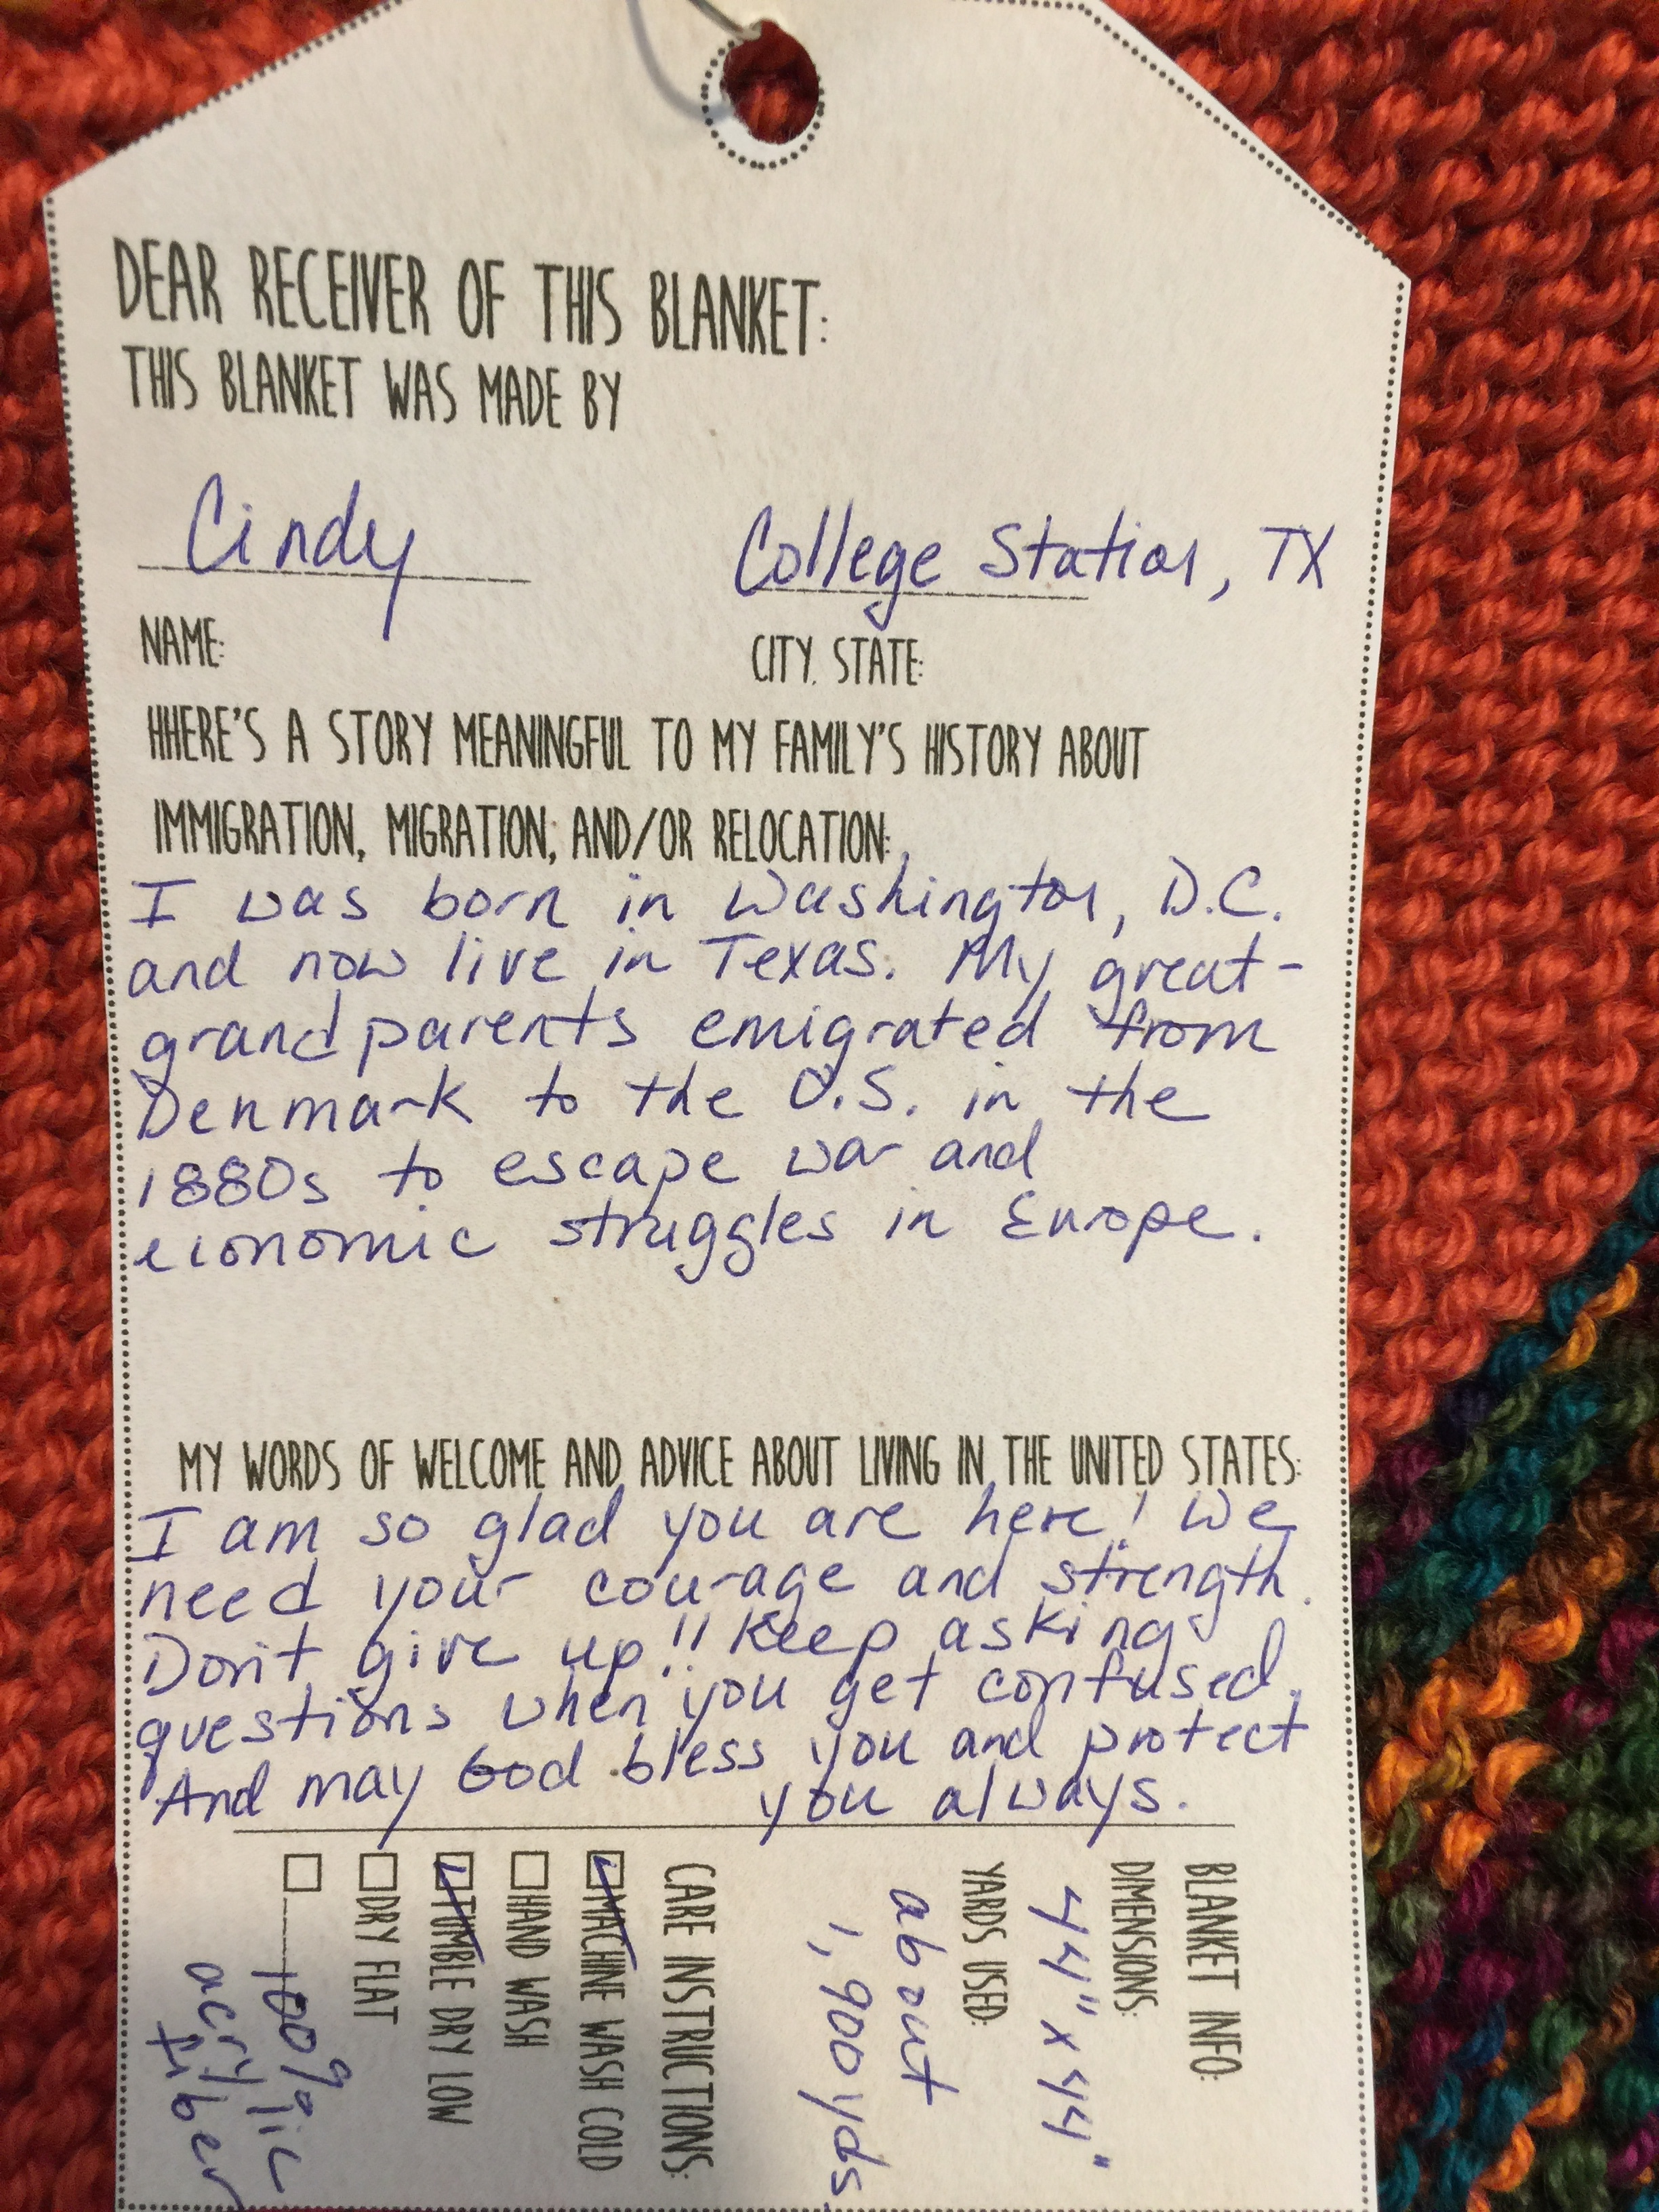 Cynthia Nevels - College Station, TX copy